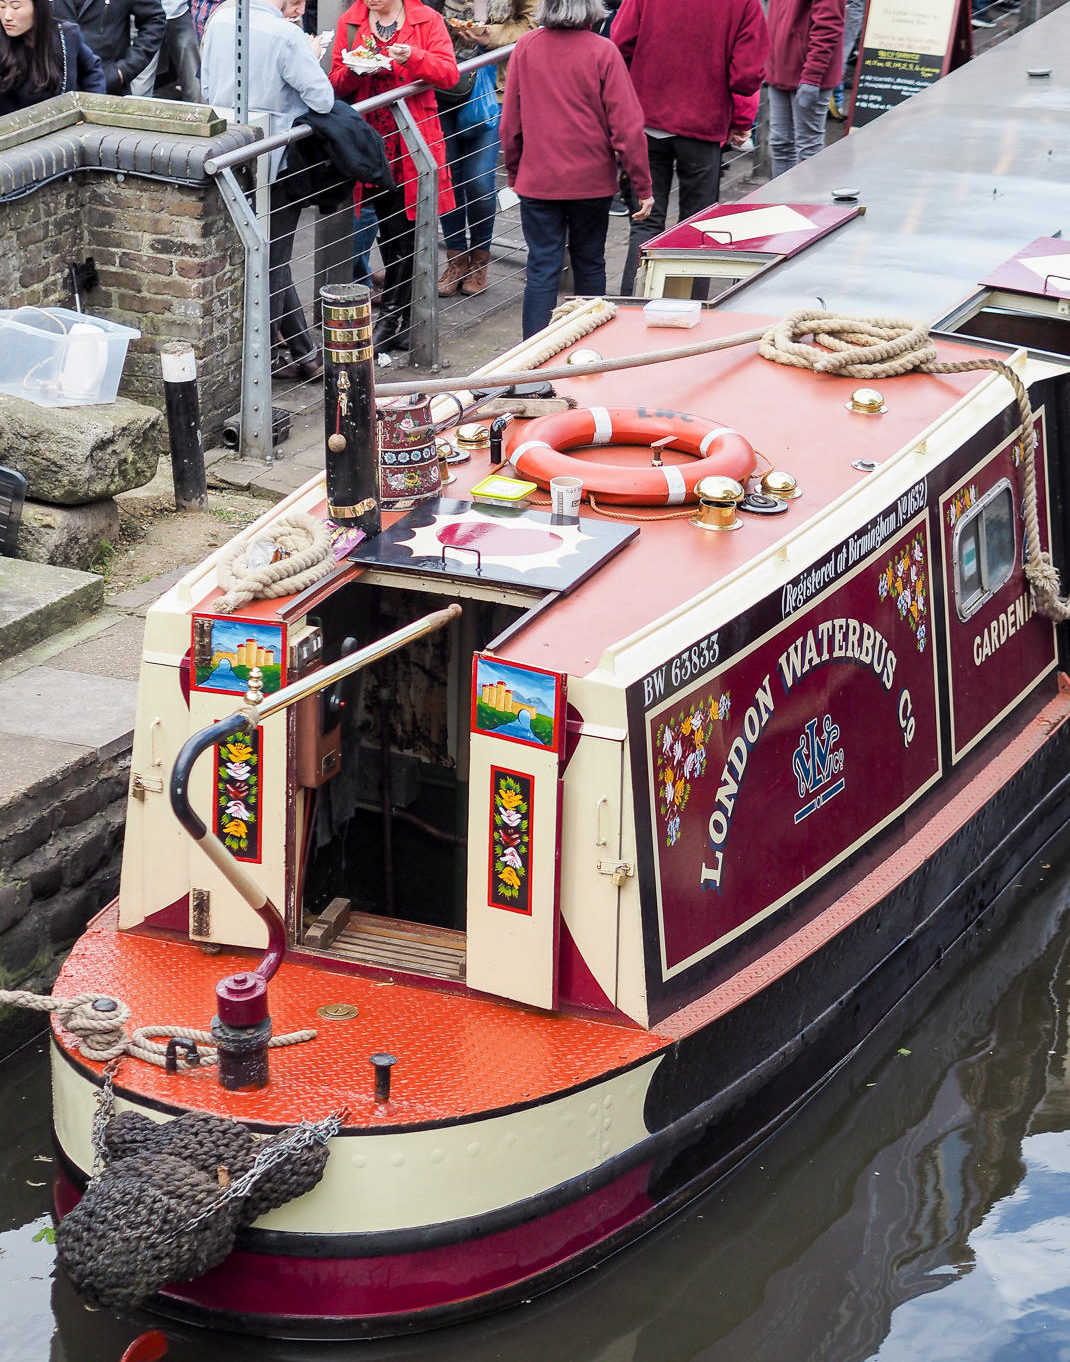 camden canal boat trips